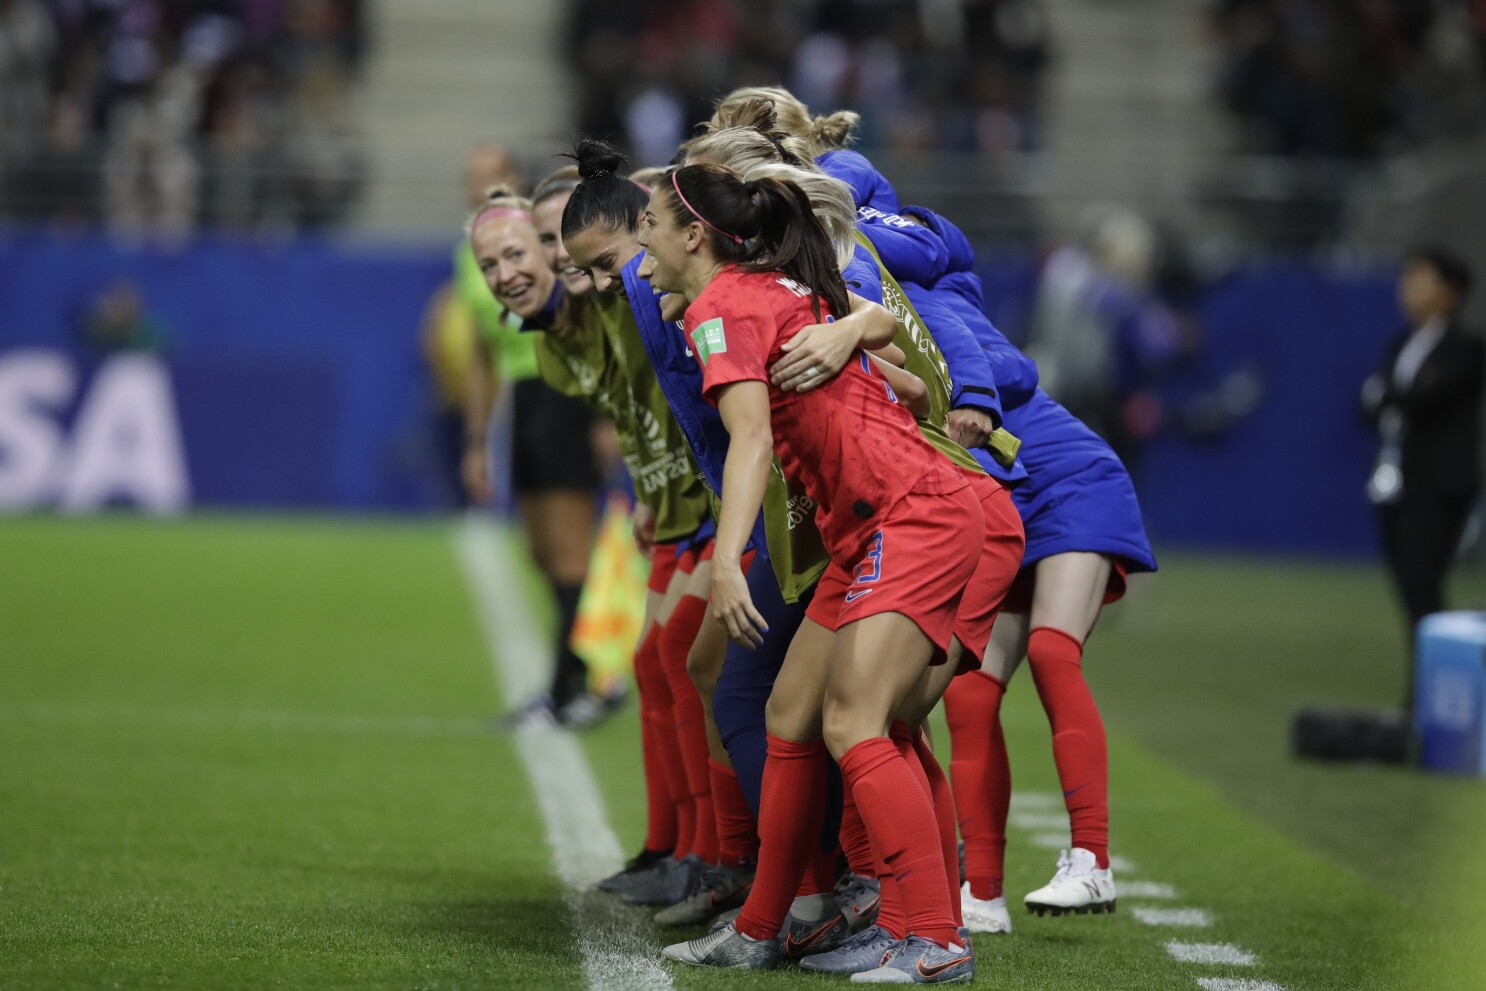 Column: For U.S. women's soccer team, problem is less the 13 goals than the 13 celebrations